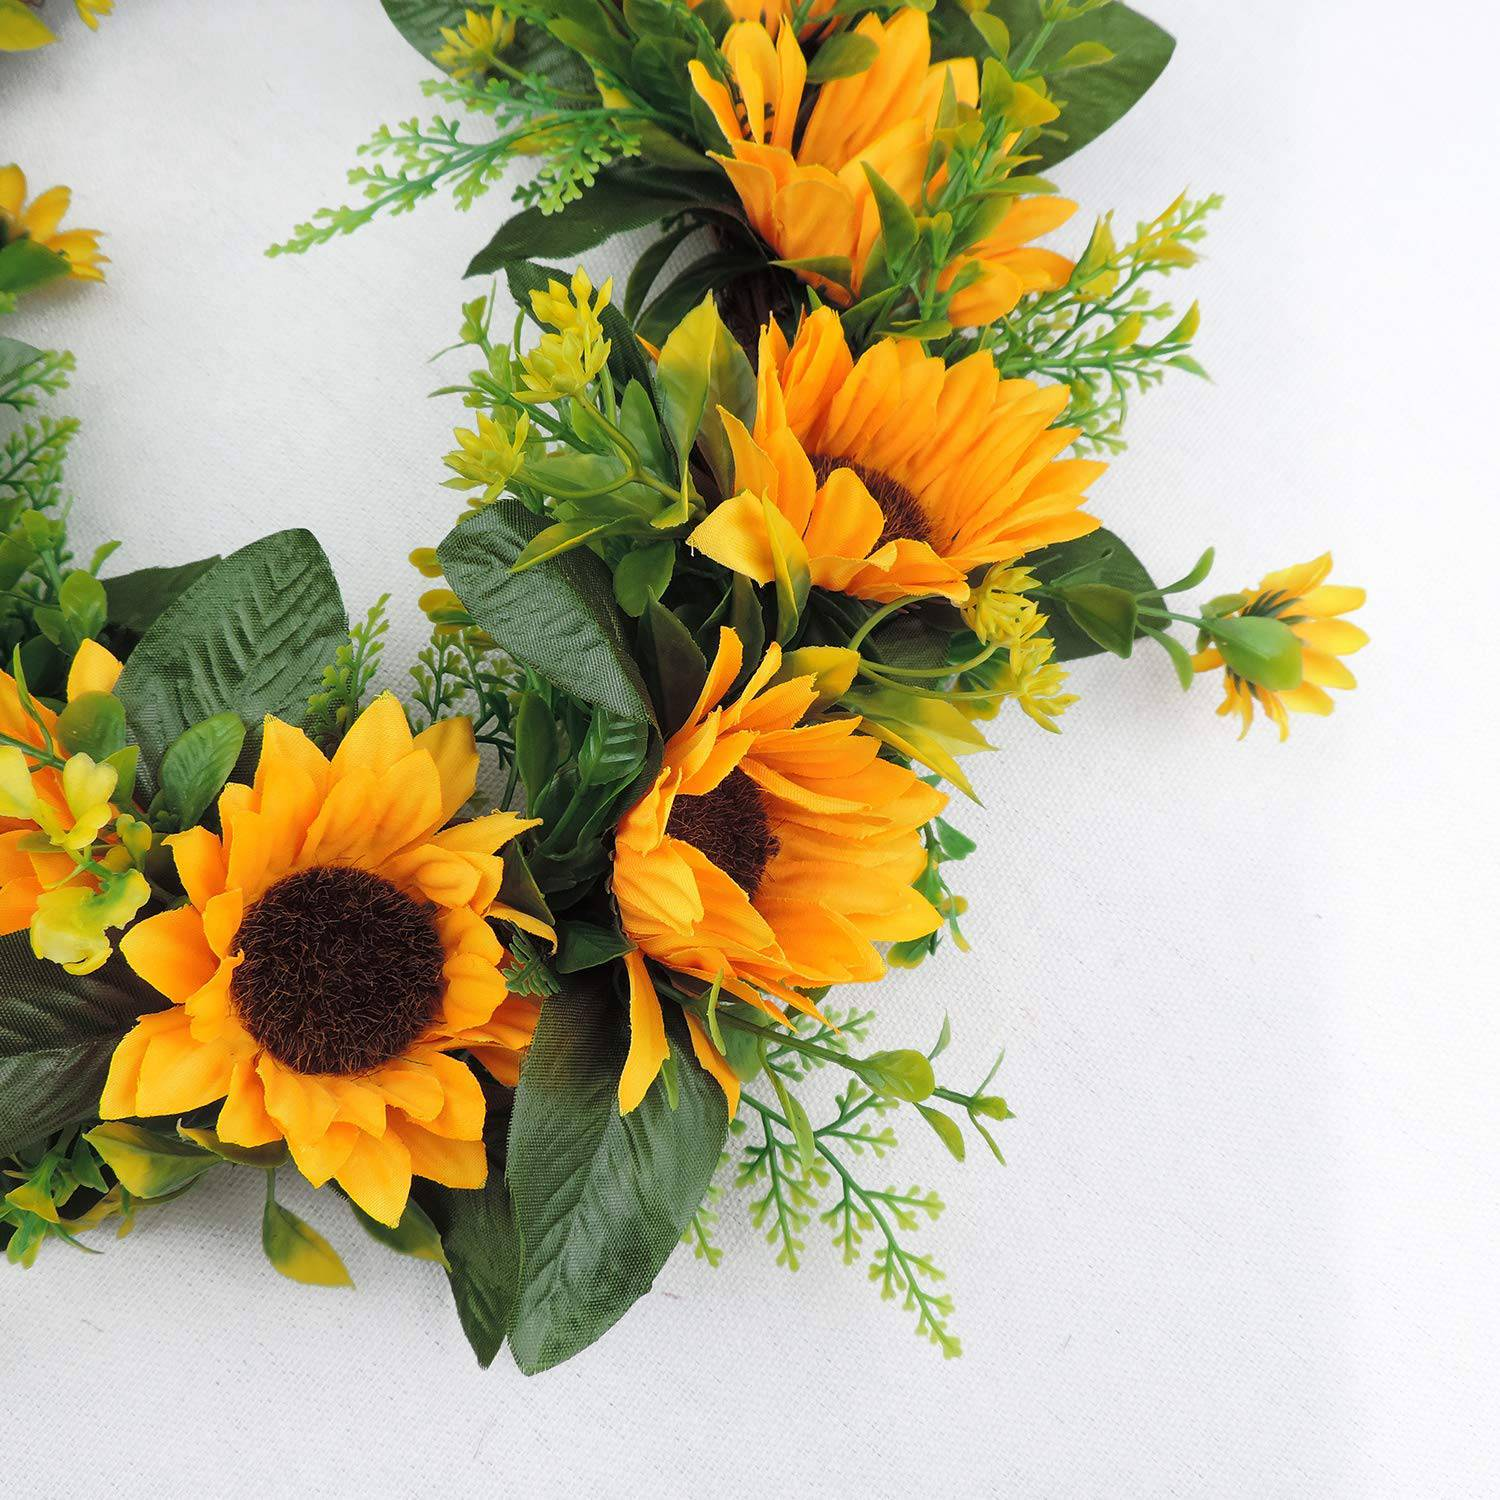 Artificial Sunflower Wreath Flower Wreath With Yellow Sunflower And Green Leaves For Front Door Indoor Or Outdoor Wall Wedding Home Decoration